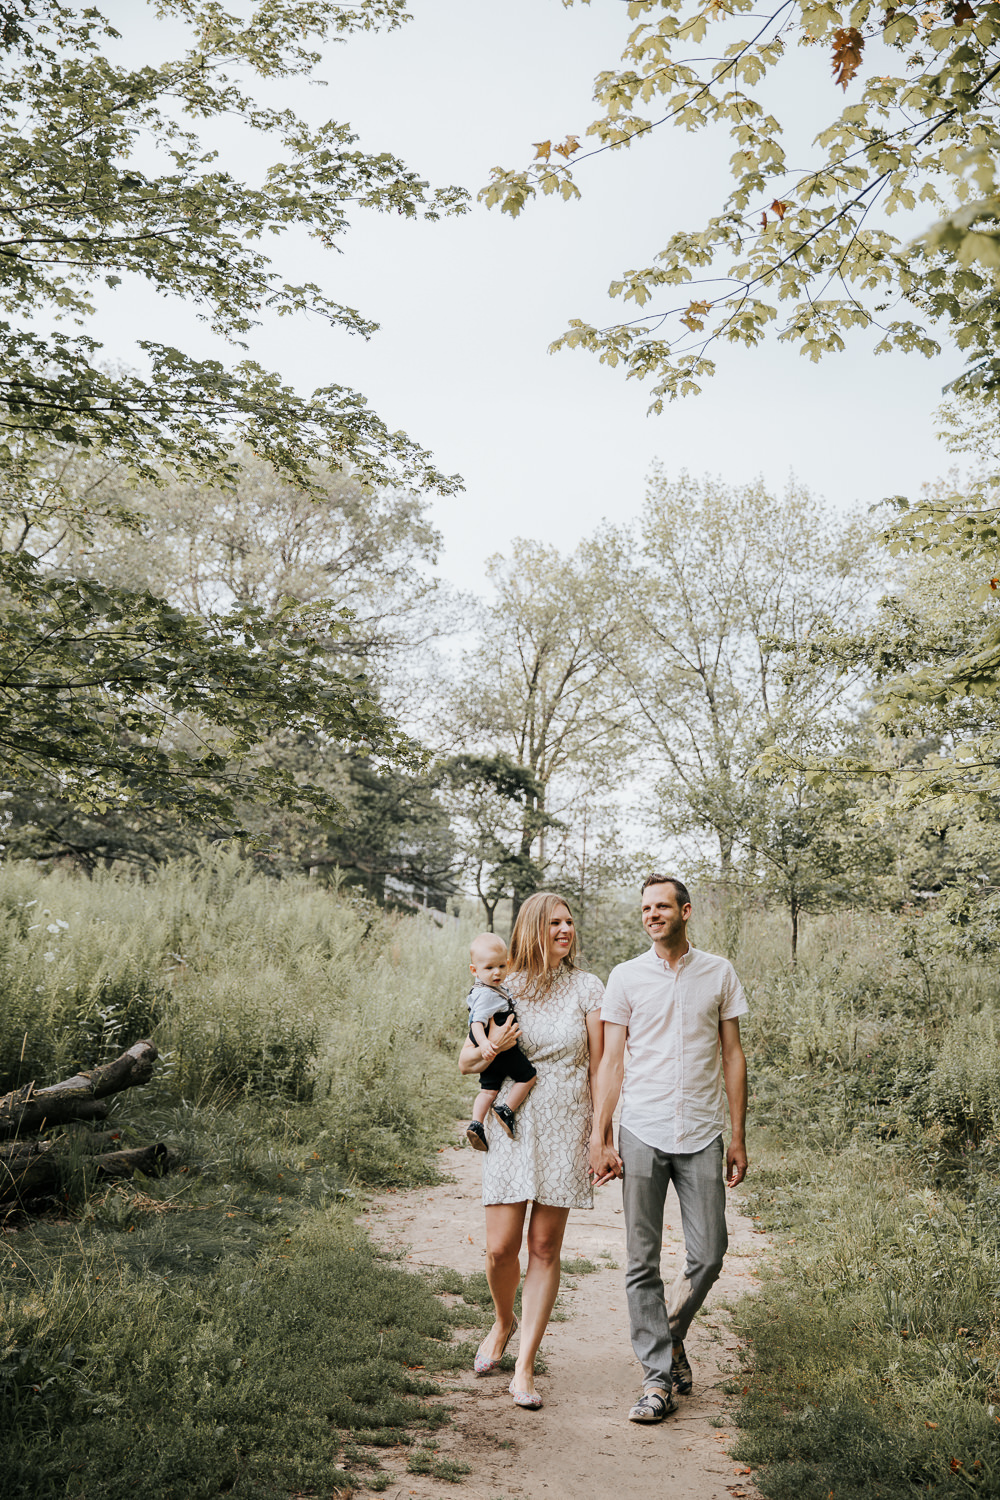 family of 3 walking down dirt path at high park surrounded by tall grasses and trees, mom carrying 8 month old blonde baby boy and parents holding hands, wife smiling at husband - York Region In-Home Photography